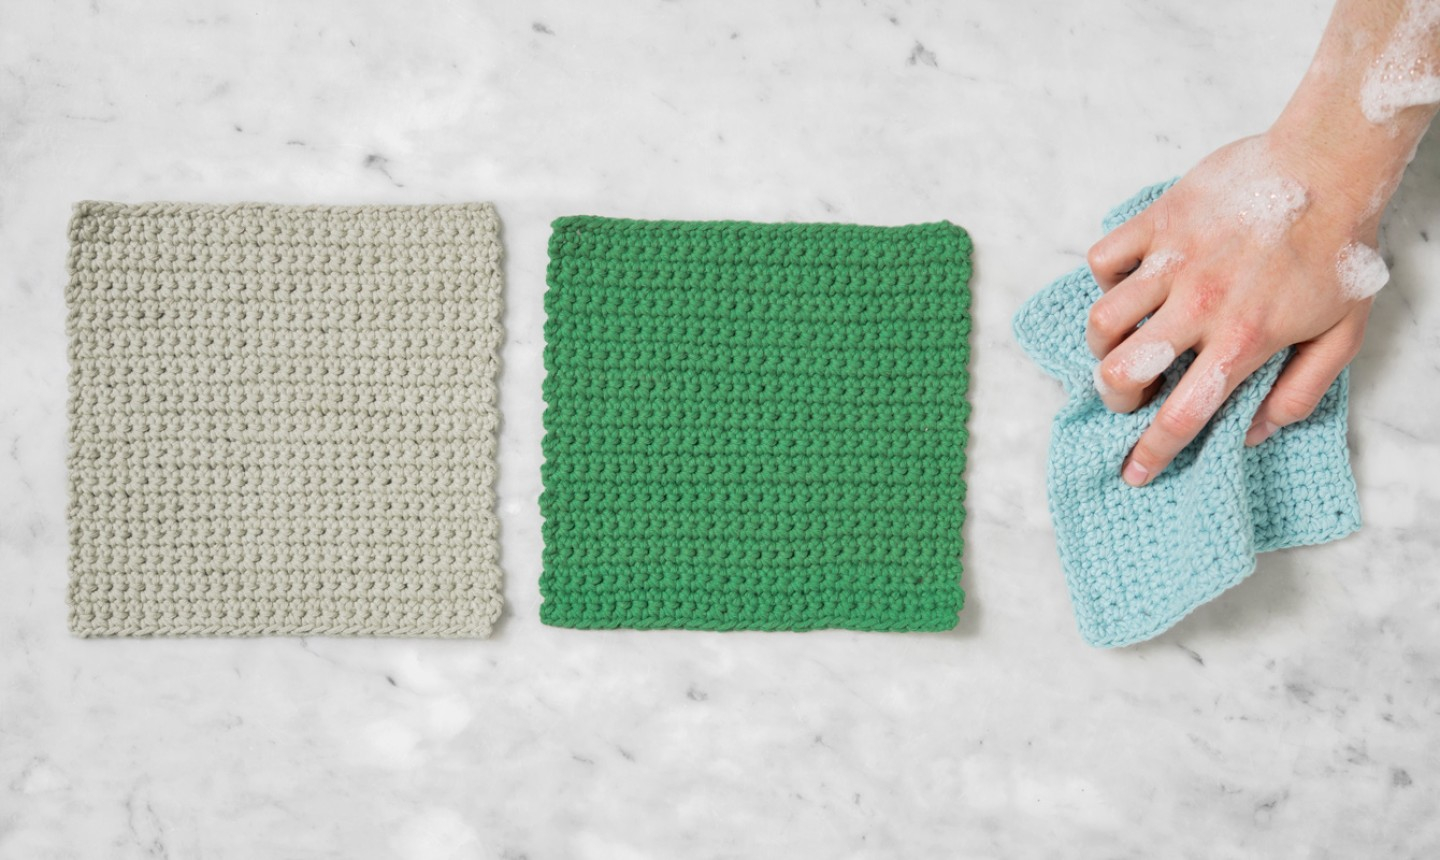 Crochet Dishcloths Free Patterns  Easiest Crochet Project Ever Stitch A Dishcloth